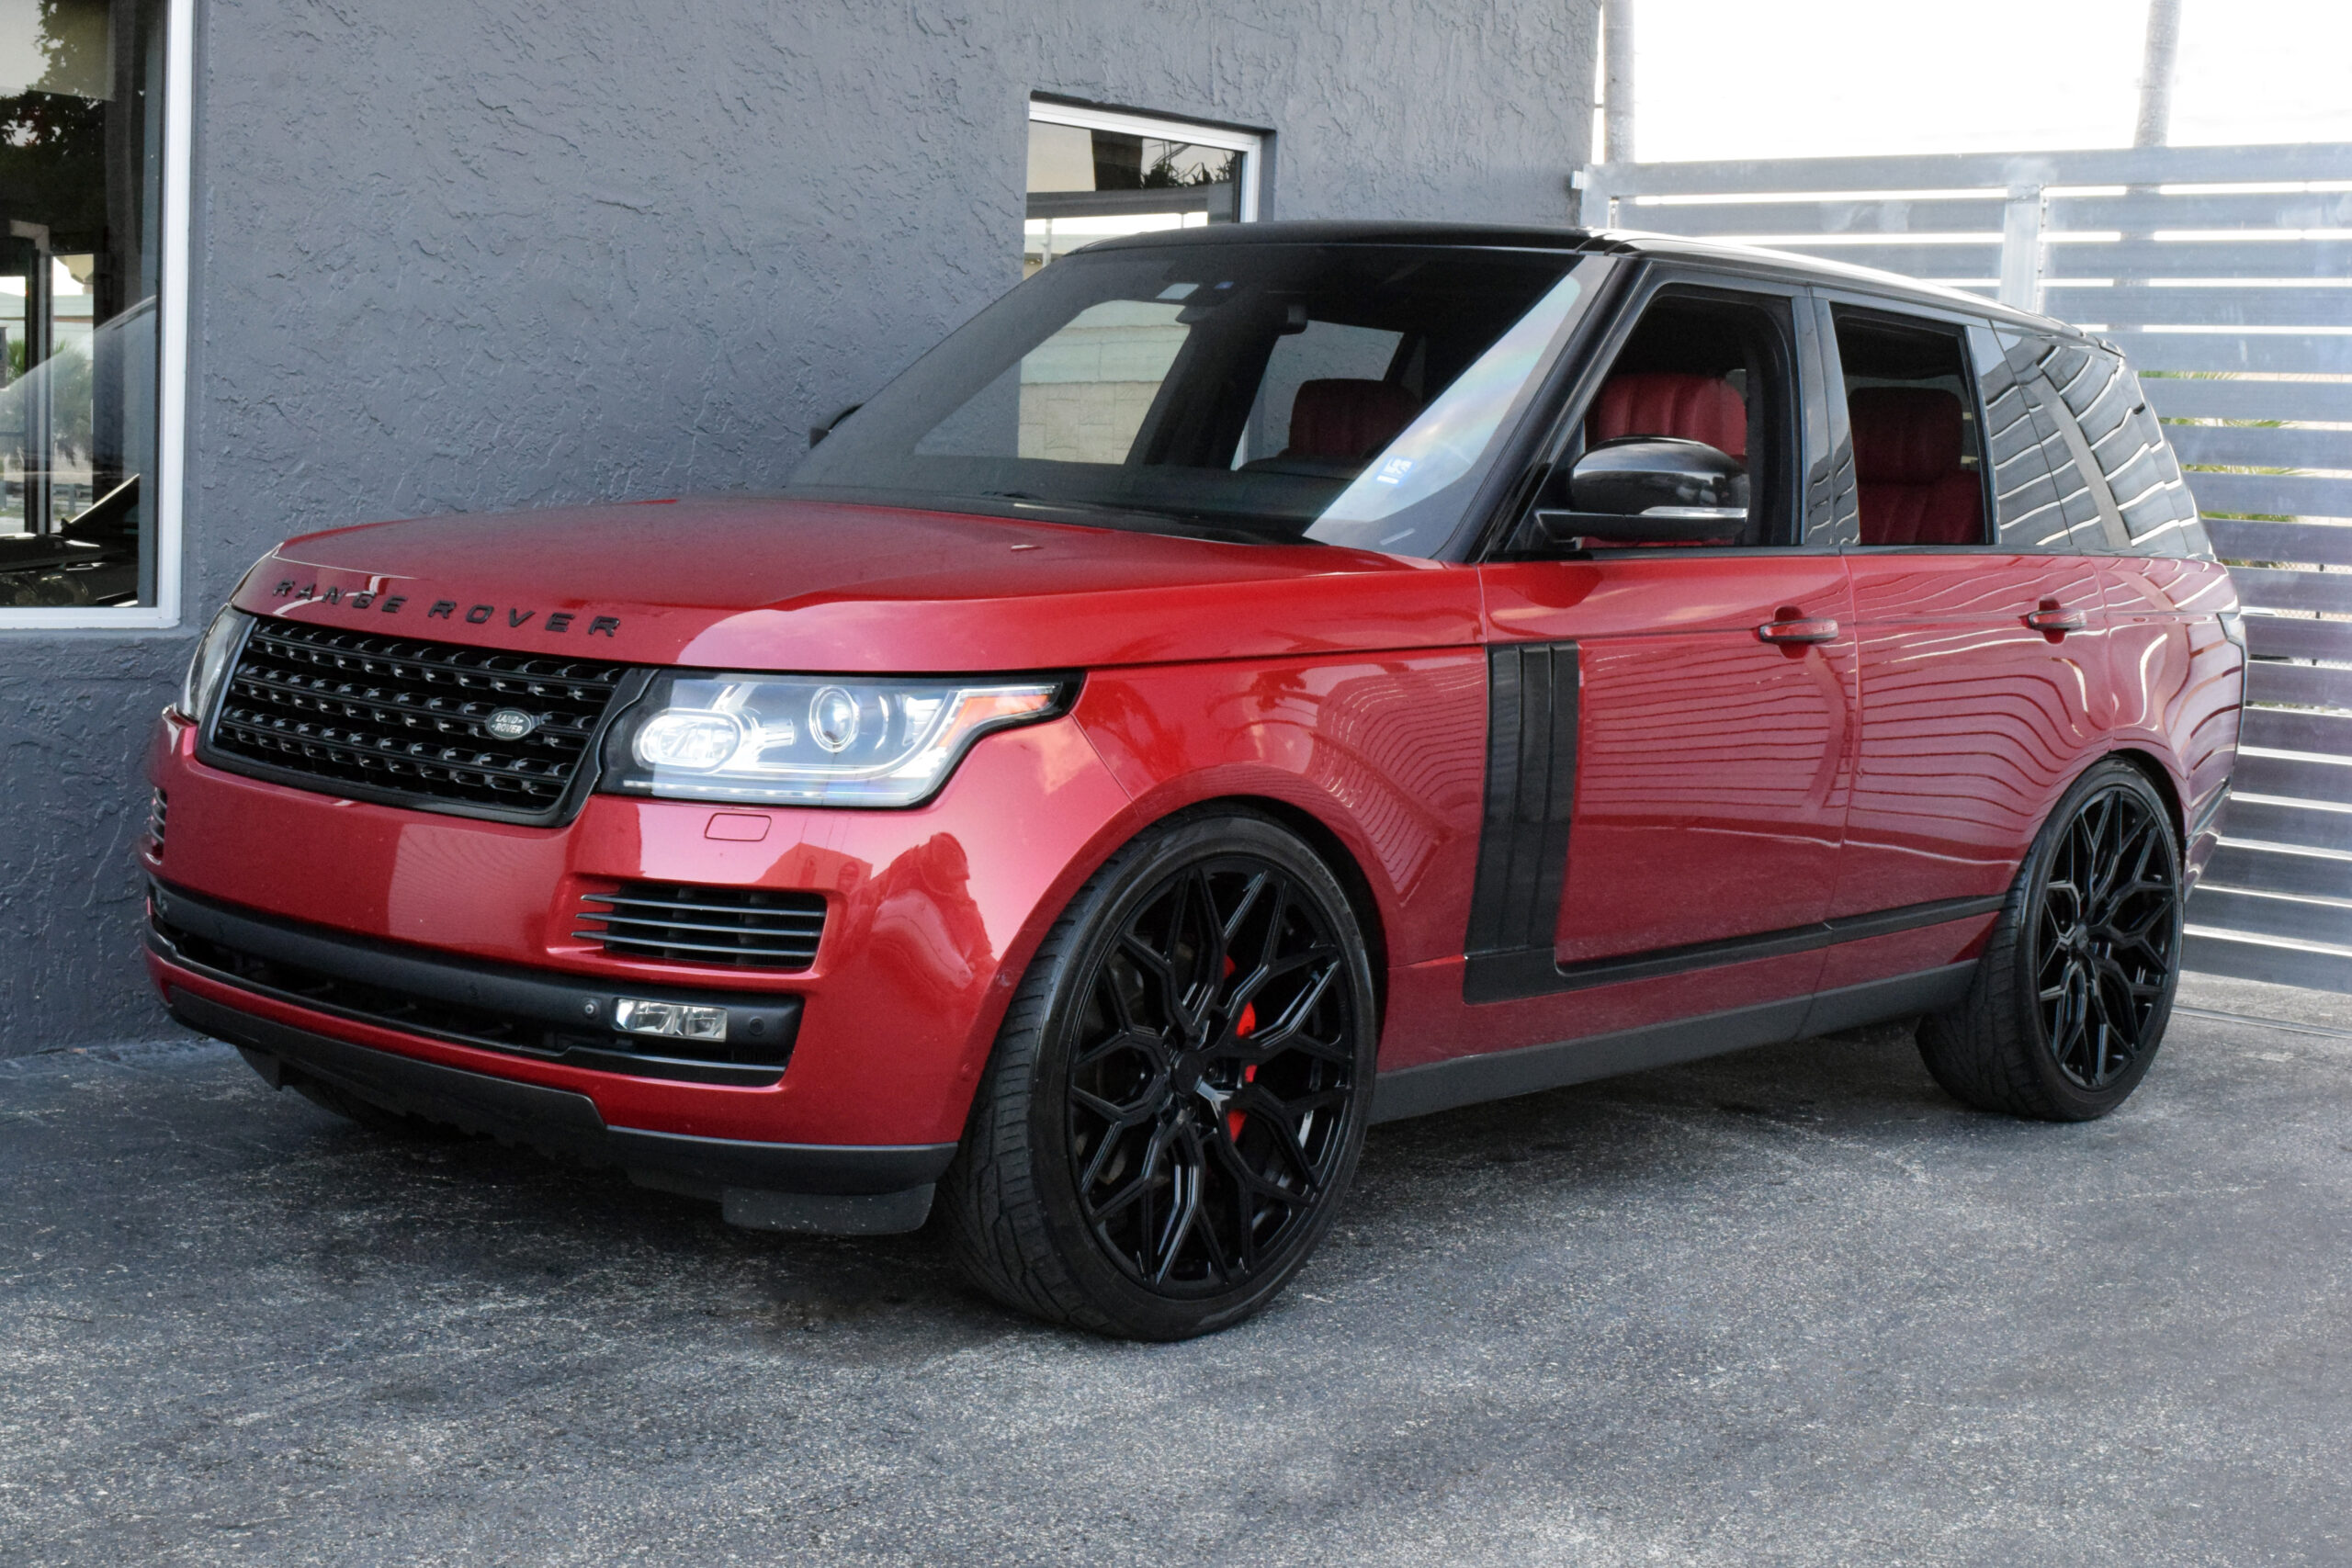 2015 Land Rover Range Rover AUTOBIOGRAPHY Supercharged V8